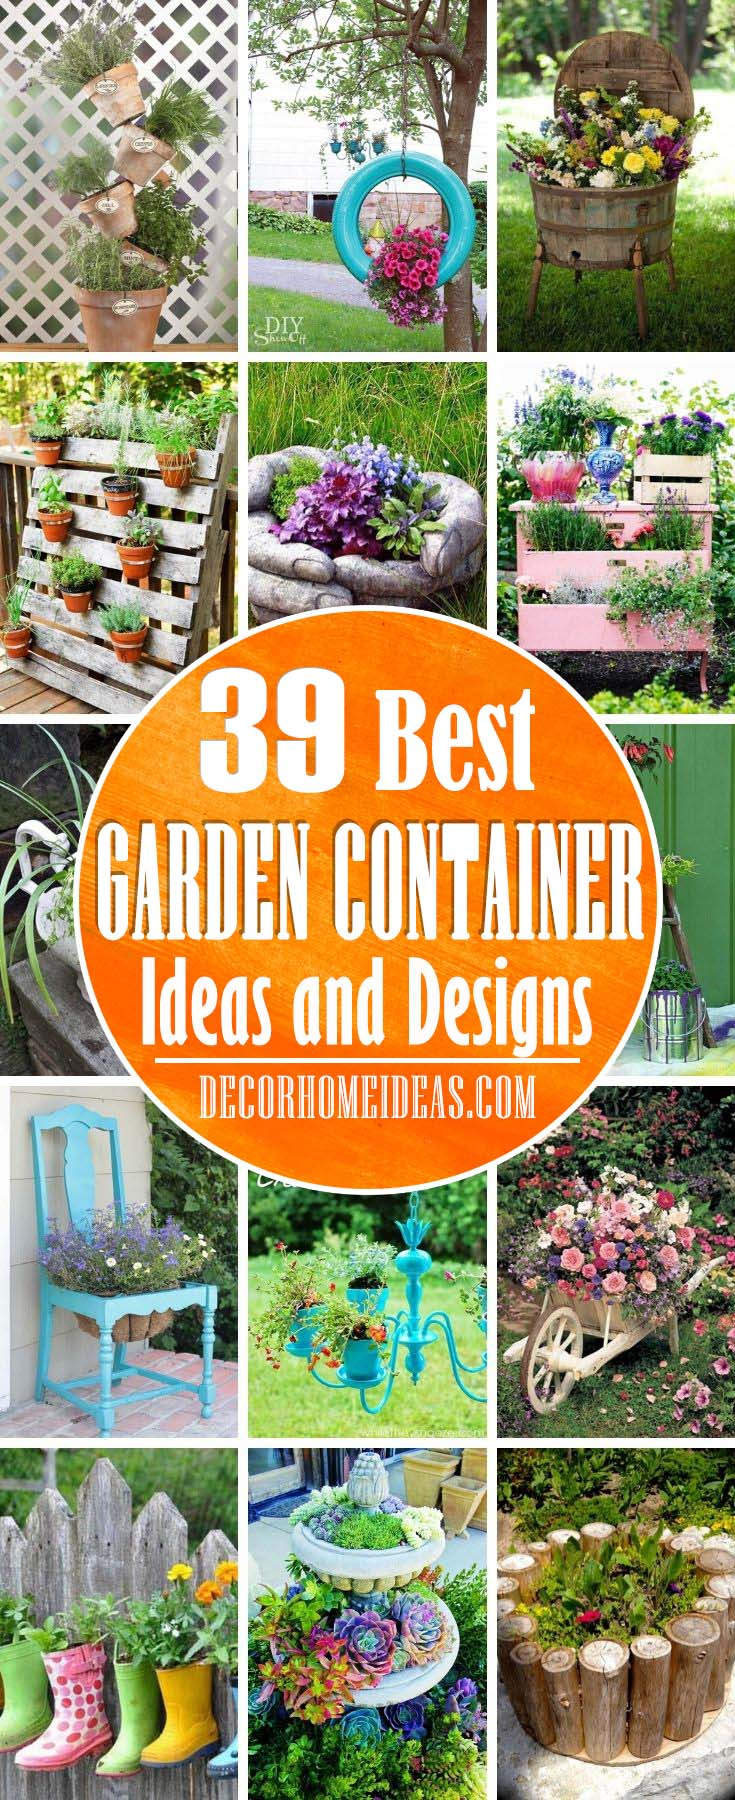 Best Garden Container Ideas. Enjoy nonstop color all season long with these container gardening ideas and design suggestions. Beautiful pots to adorn porches and patios. #decorhomeideas